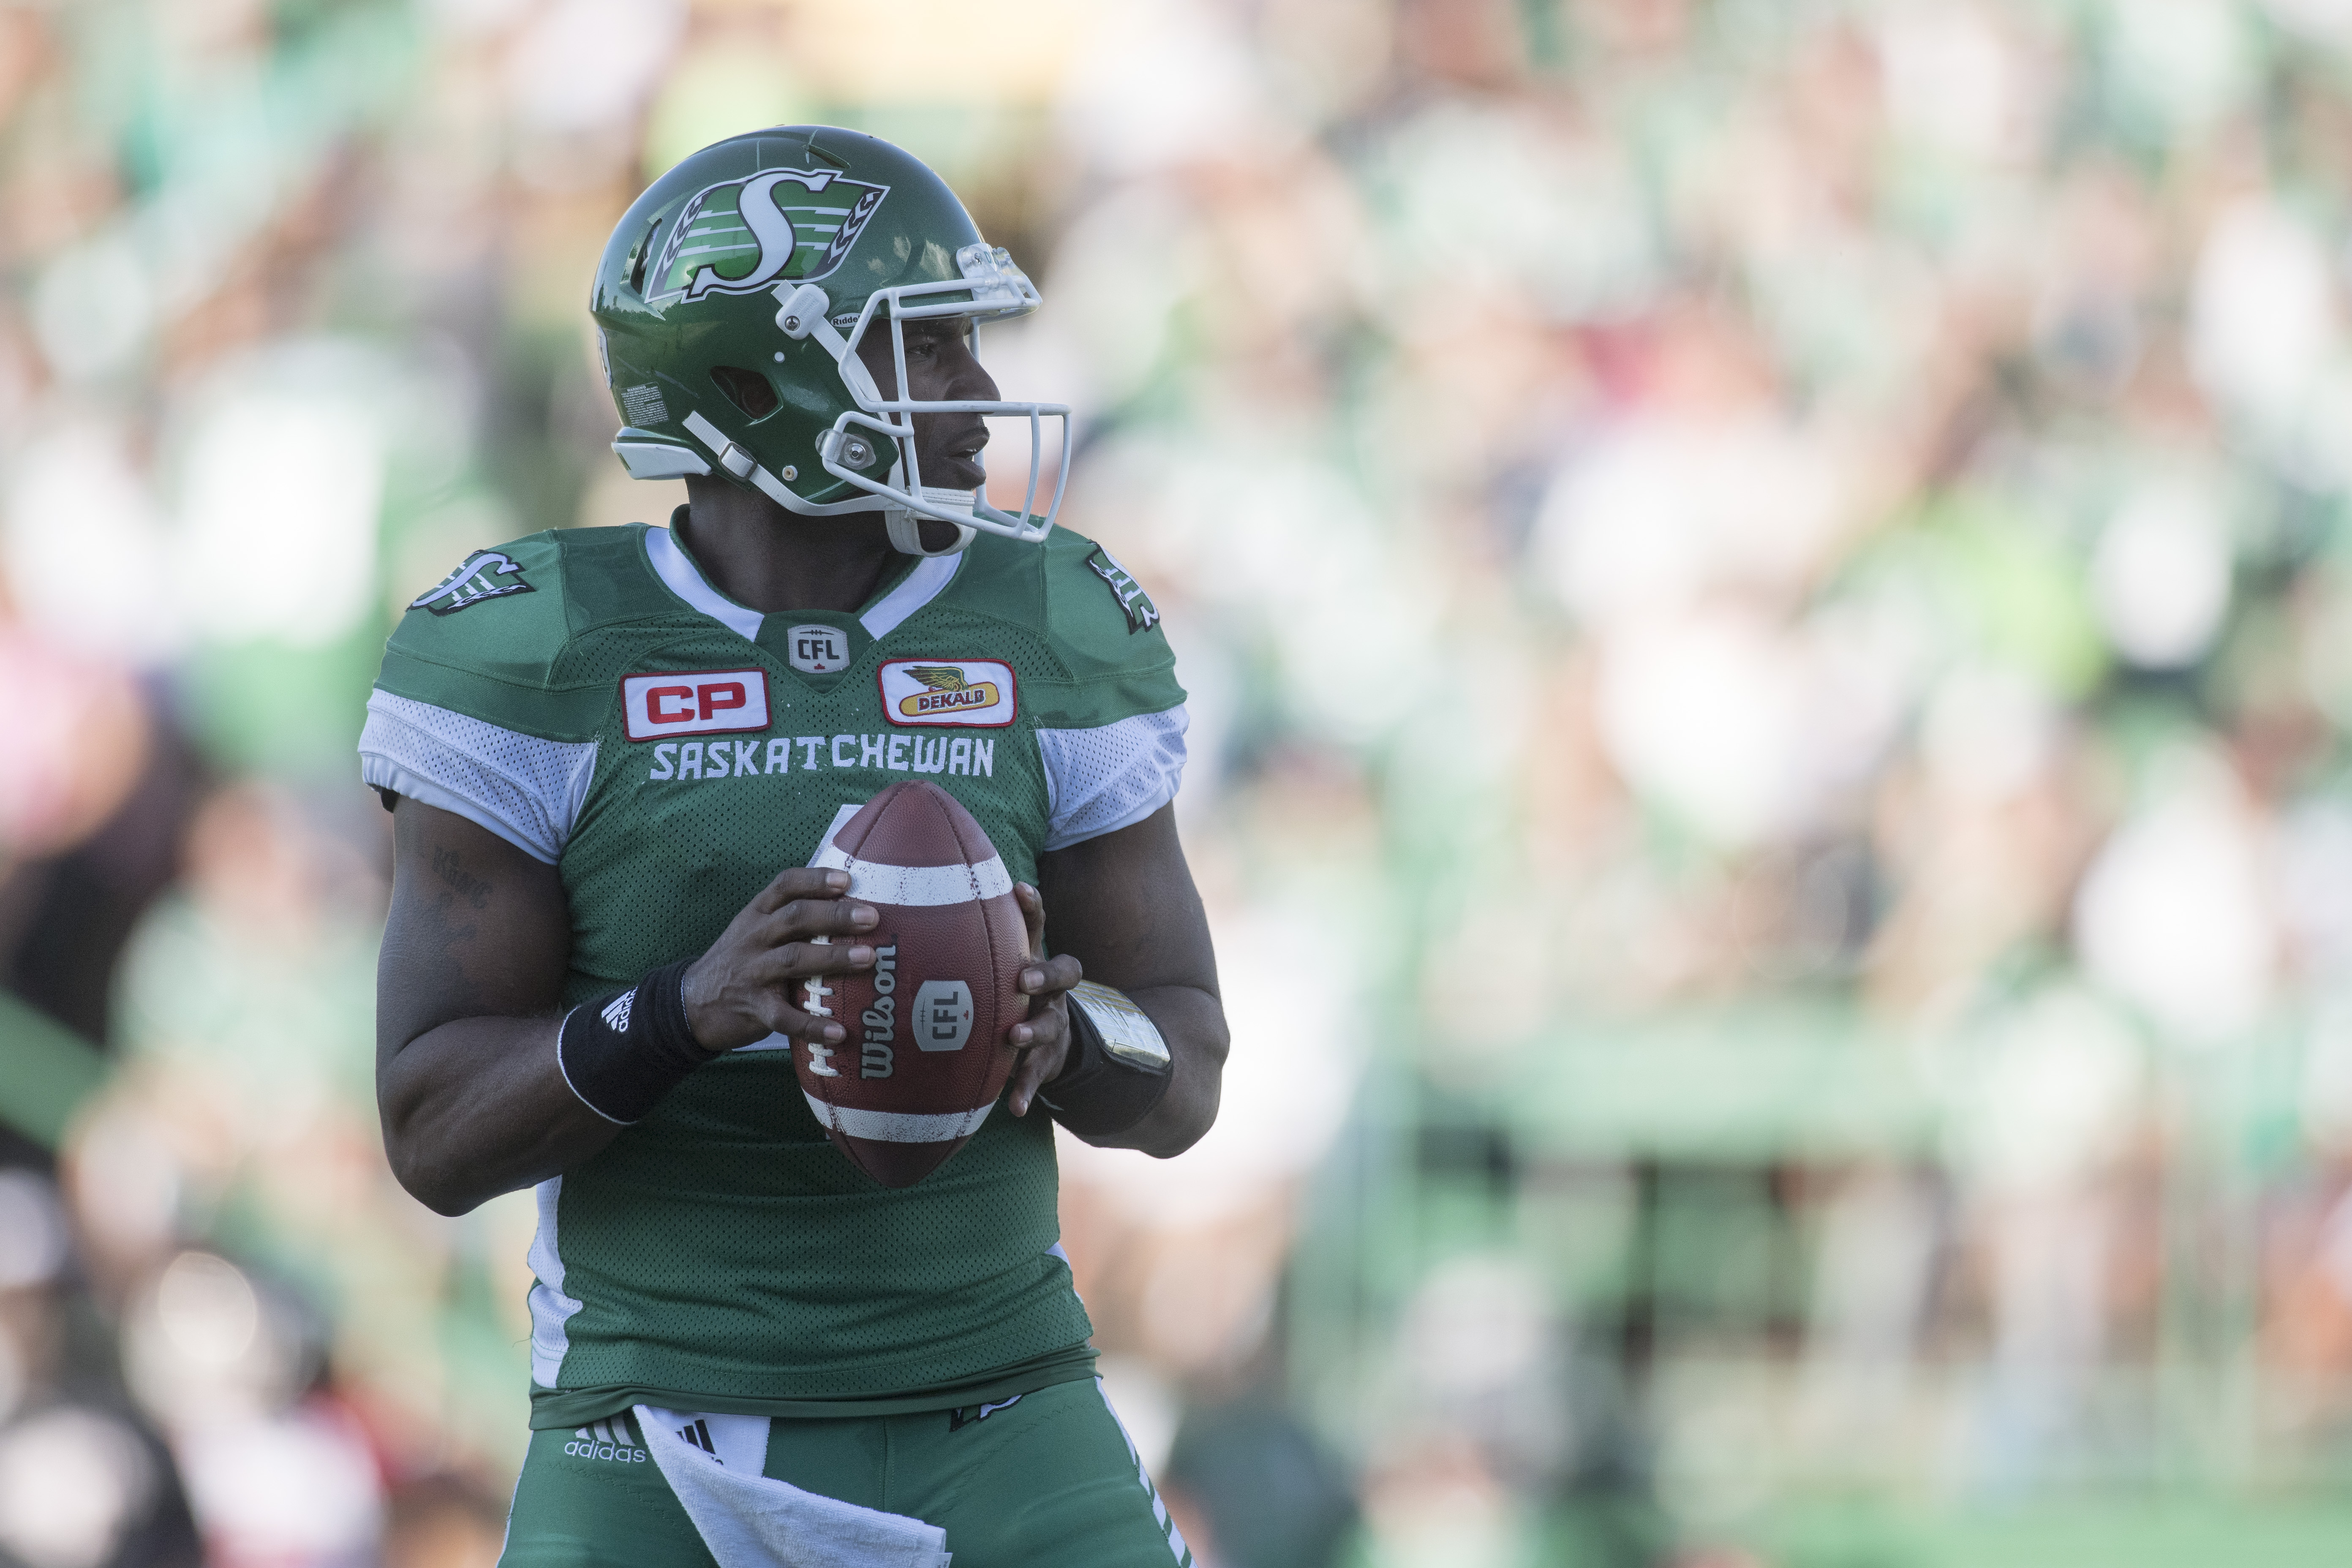 Riders Take On Bombers In 52nd Labour Day Classic